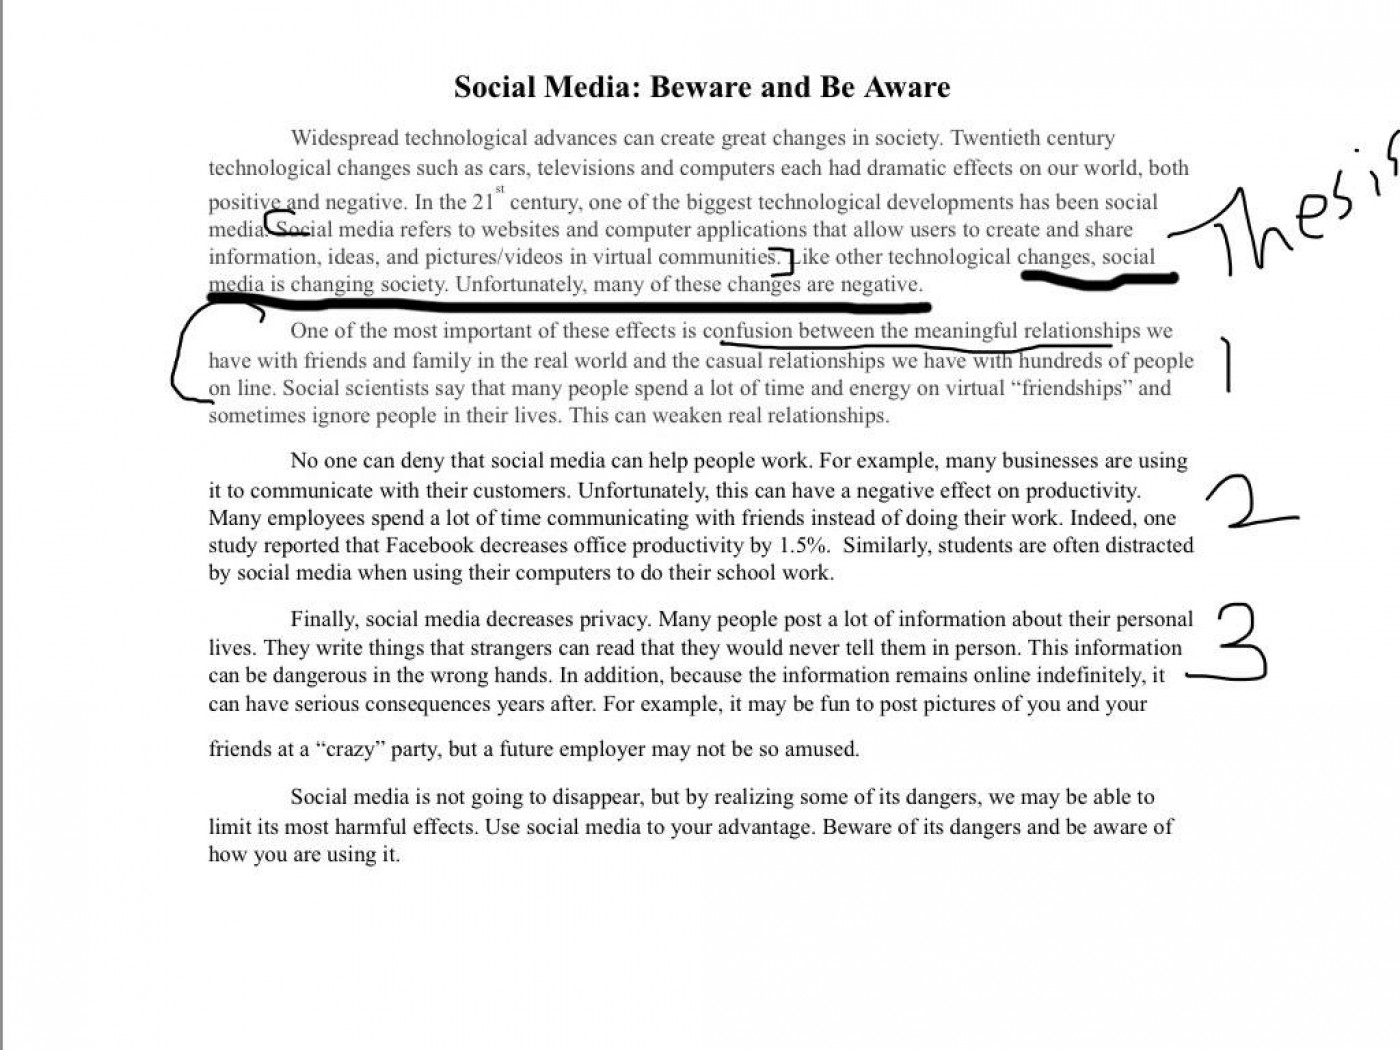 007 Social Media Essay Introduction Example Thatsnotus